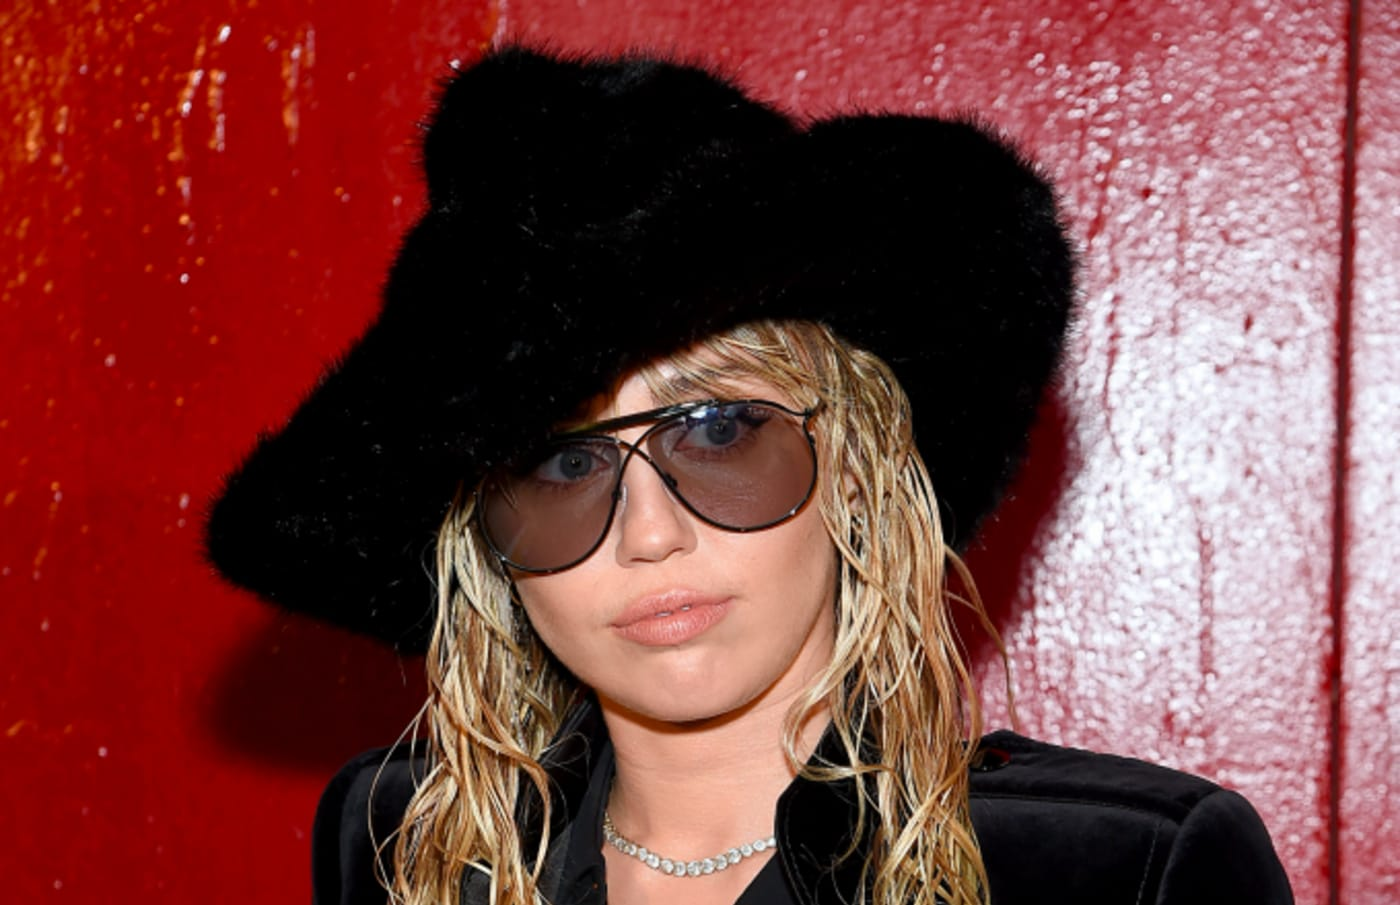 Miley Cyrus attends the Tom Ford arrivals during New York Fashion Week